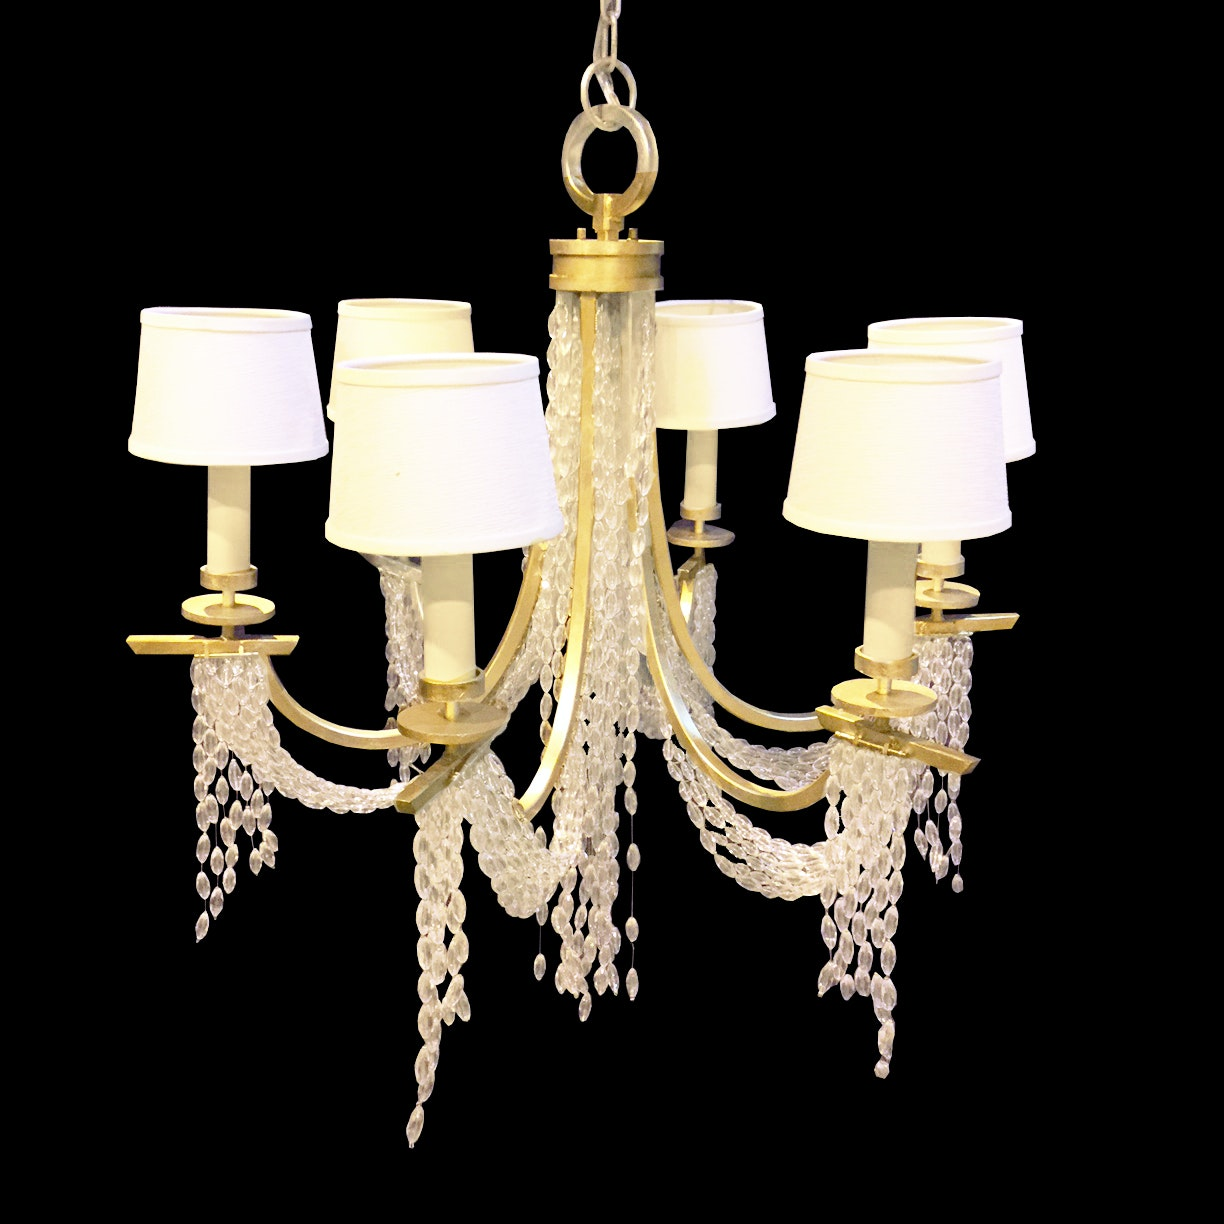 Silver Tone Chandelier with Six Lampshades